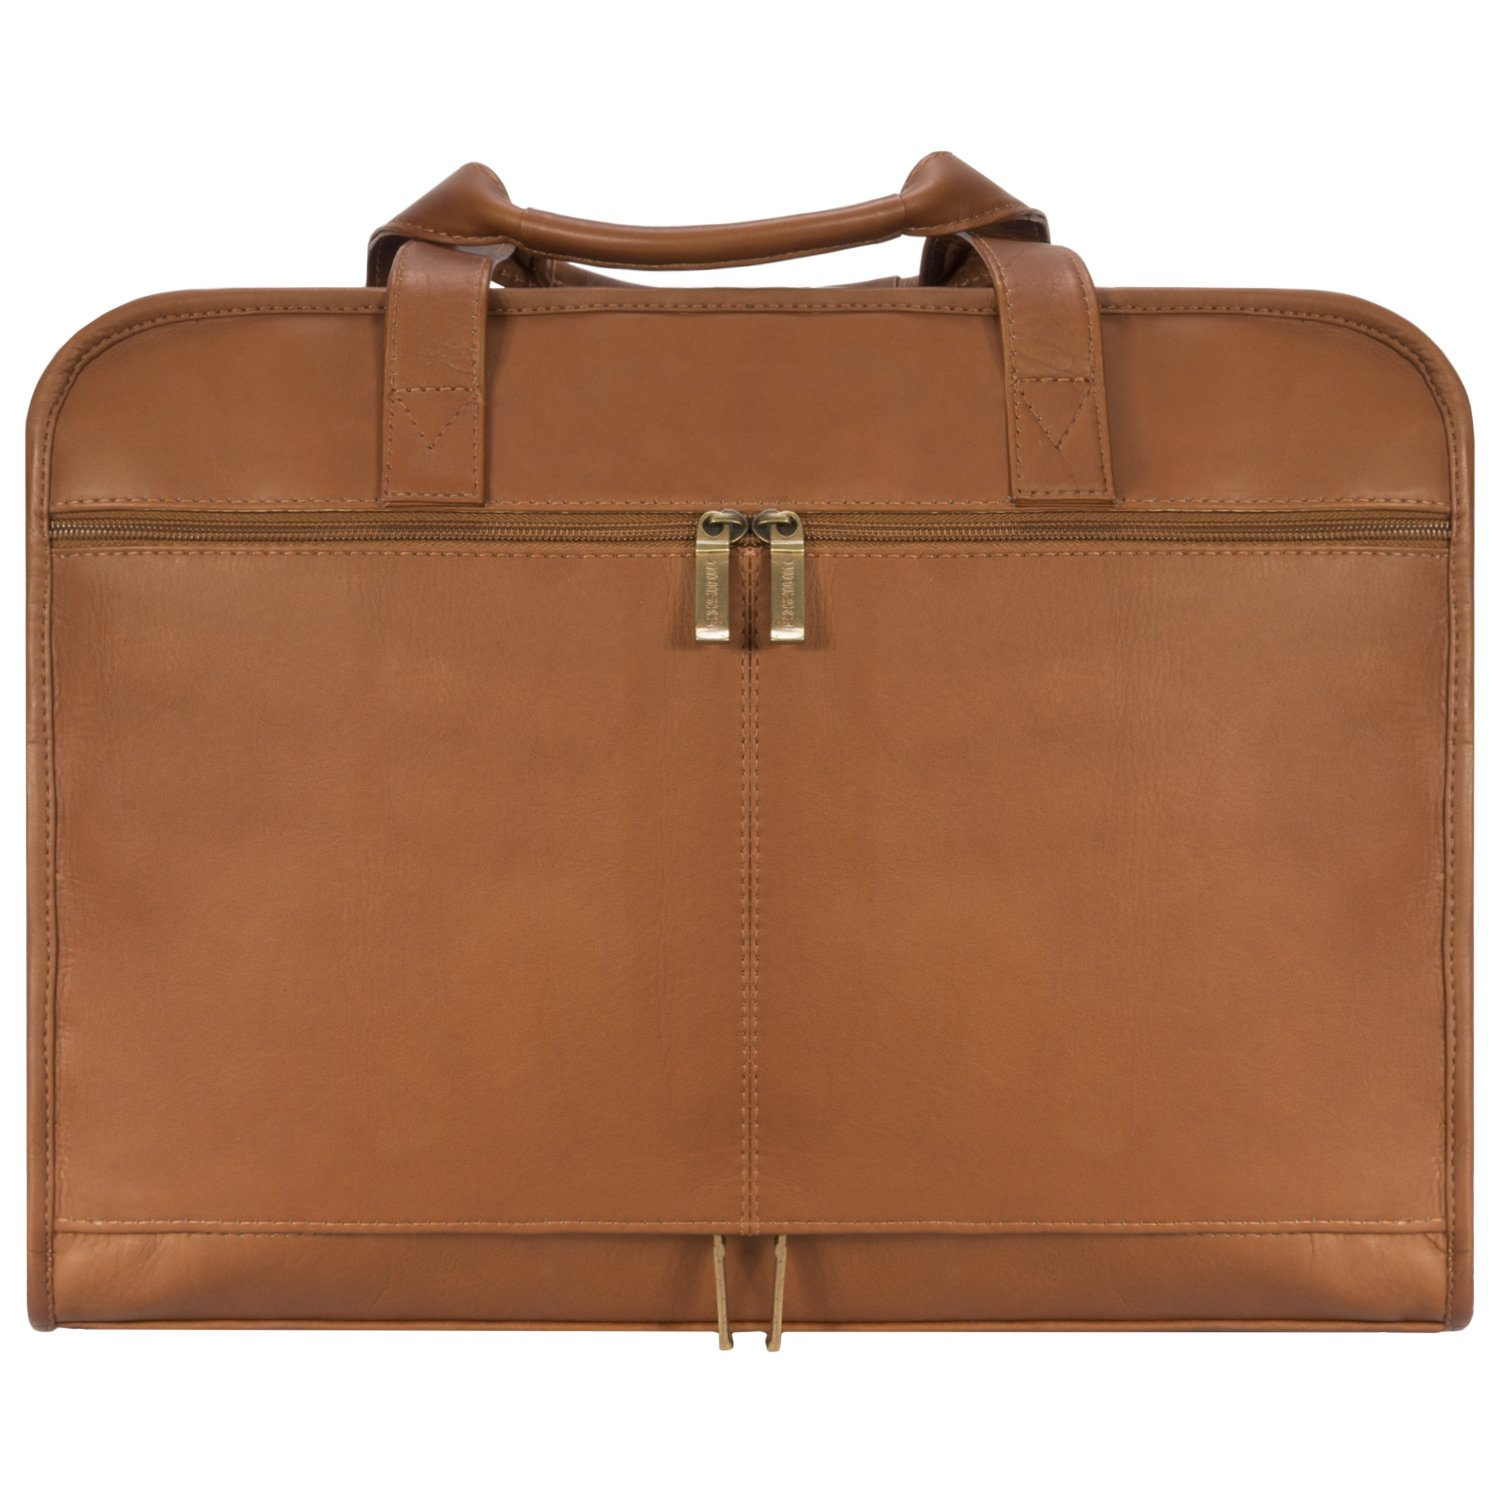 Muiska Leather Top-Zip 17 Inch Laptop Briefcase, Saddle, One Size by Muiska (Image #3)